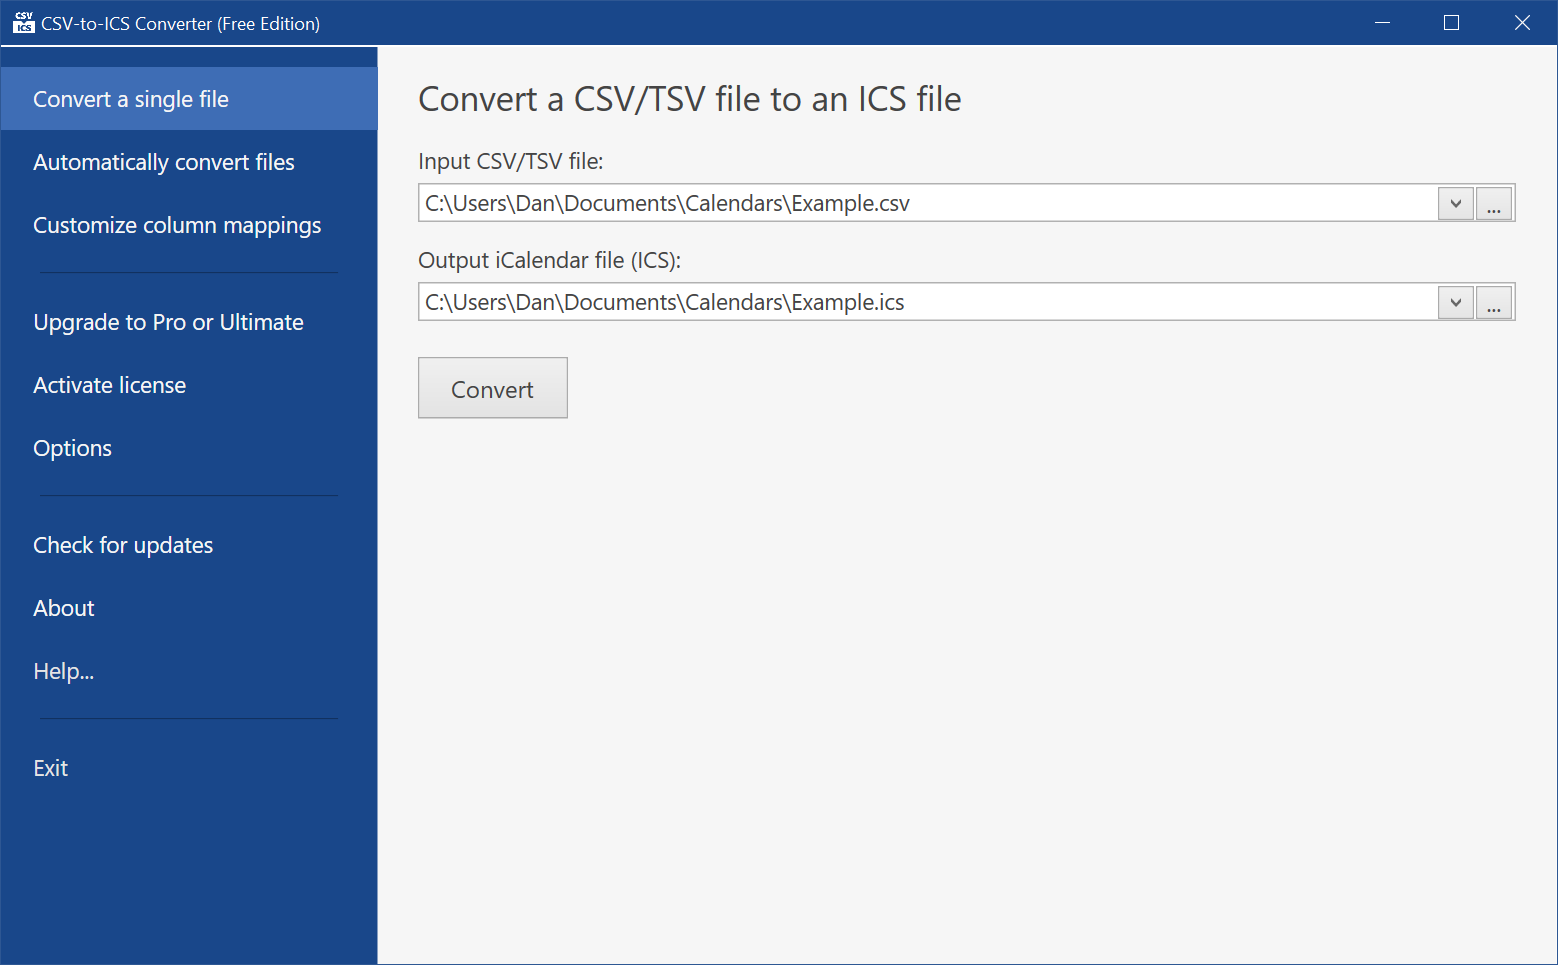 Select a CSV input file, select an ICS output file, and then click the Convert button to transform your CSV file into an ICS calendar.